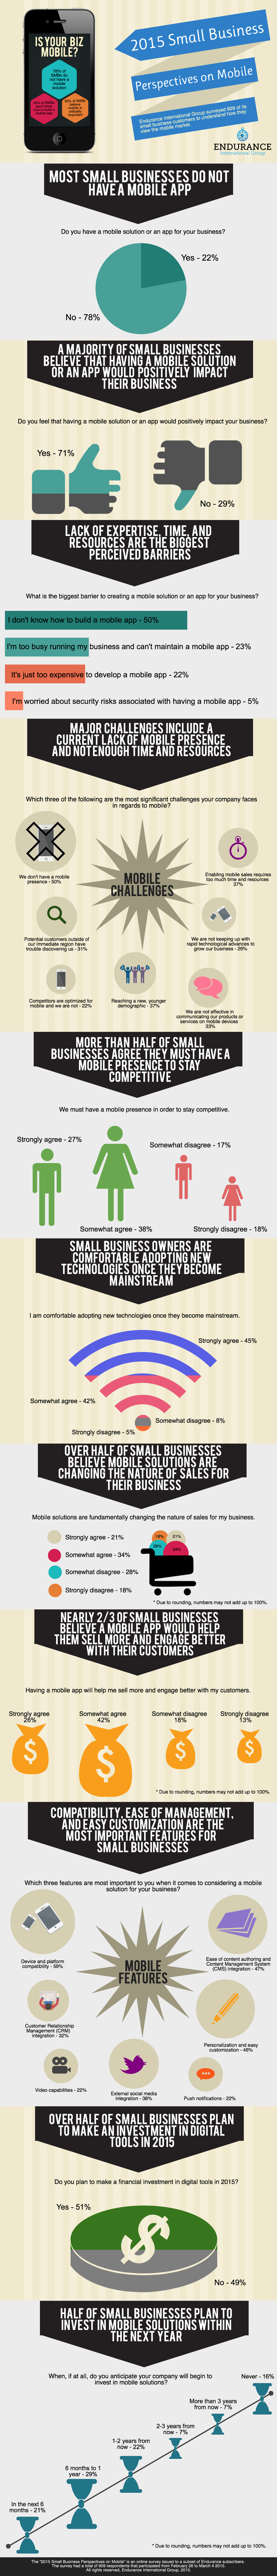 2015 Small Business Perspective on Mobile Infographic